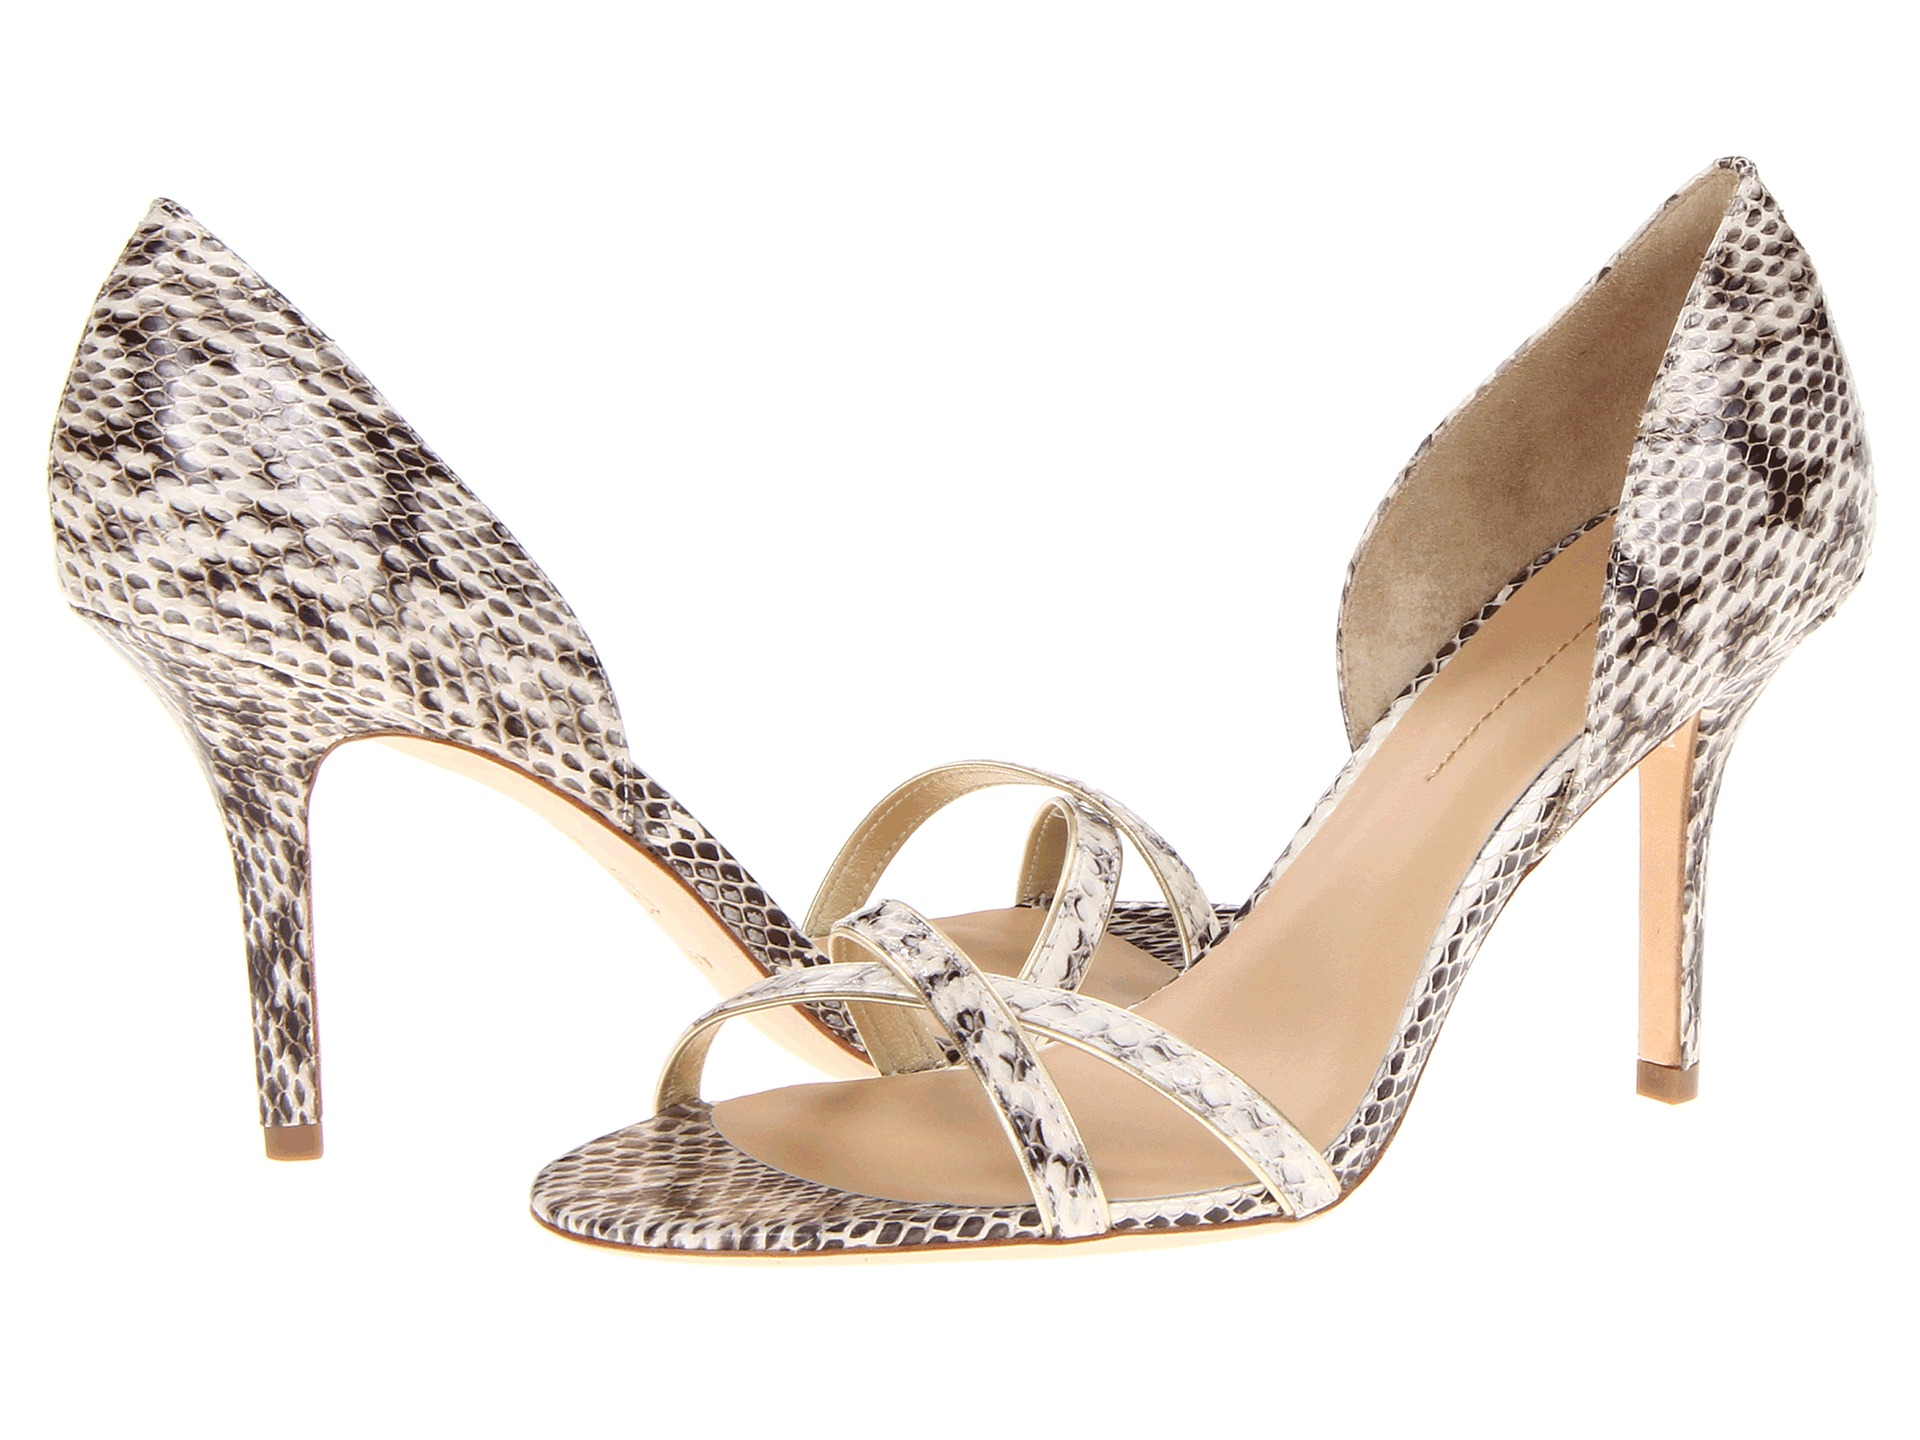 7c7317caa209 Comfortable evening sandals by Aerin